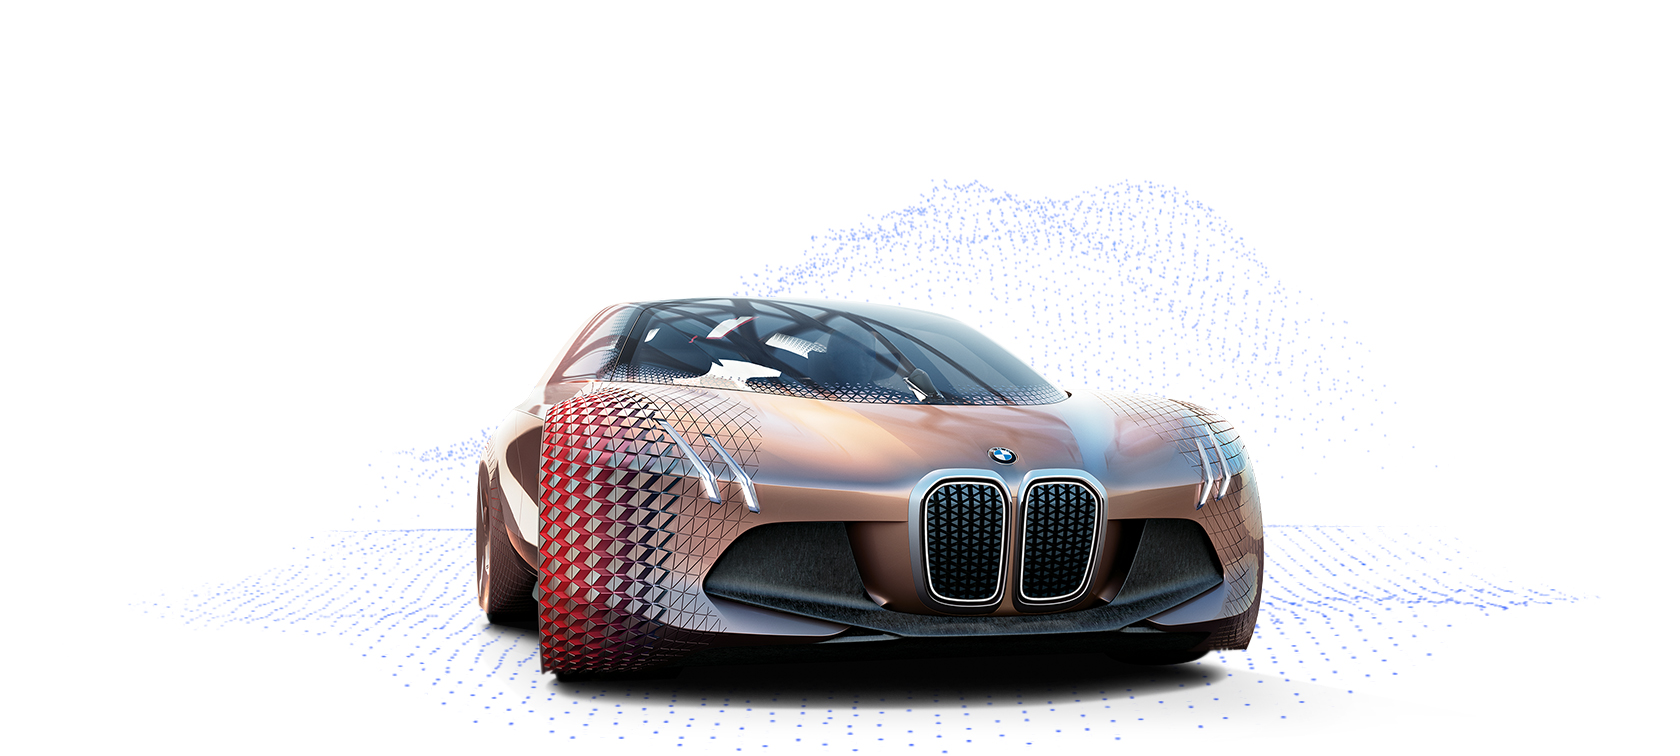 Bmw The Next 100 Years The Bmw Vision Next 100